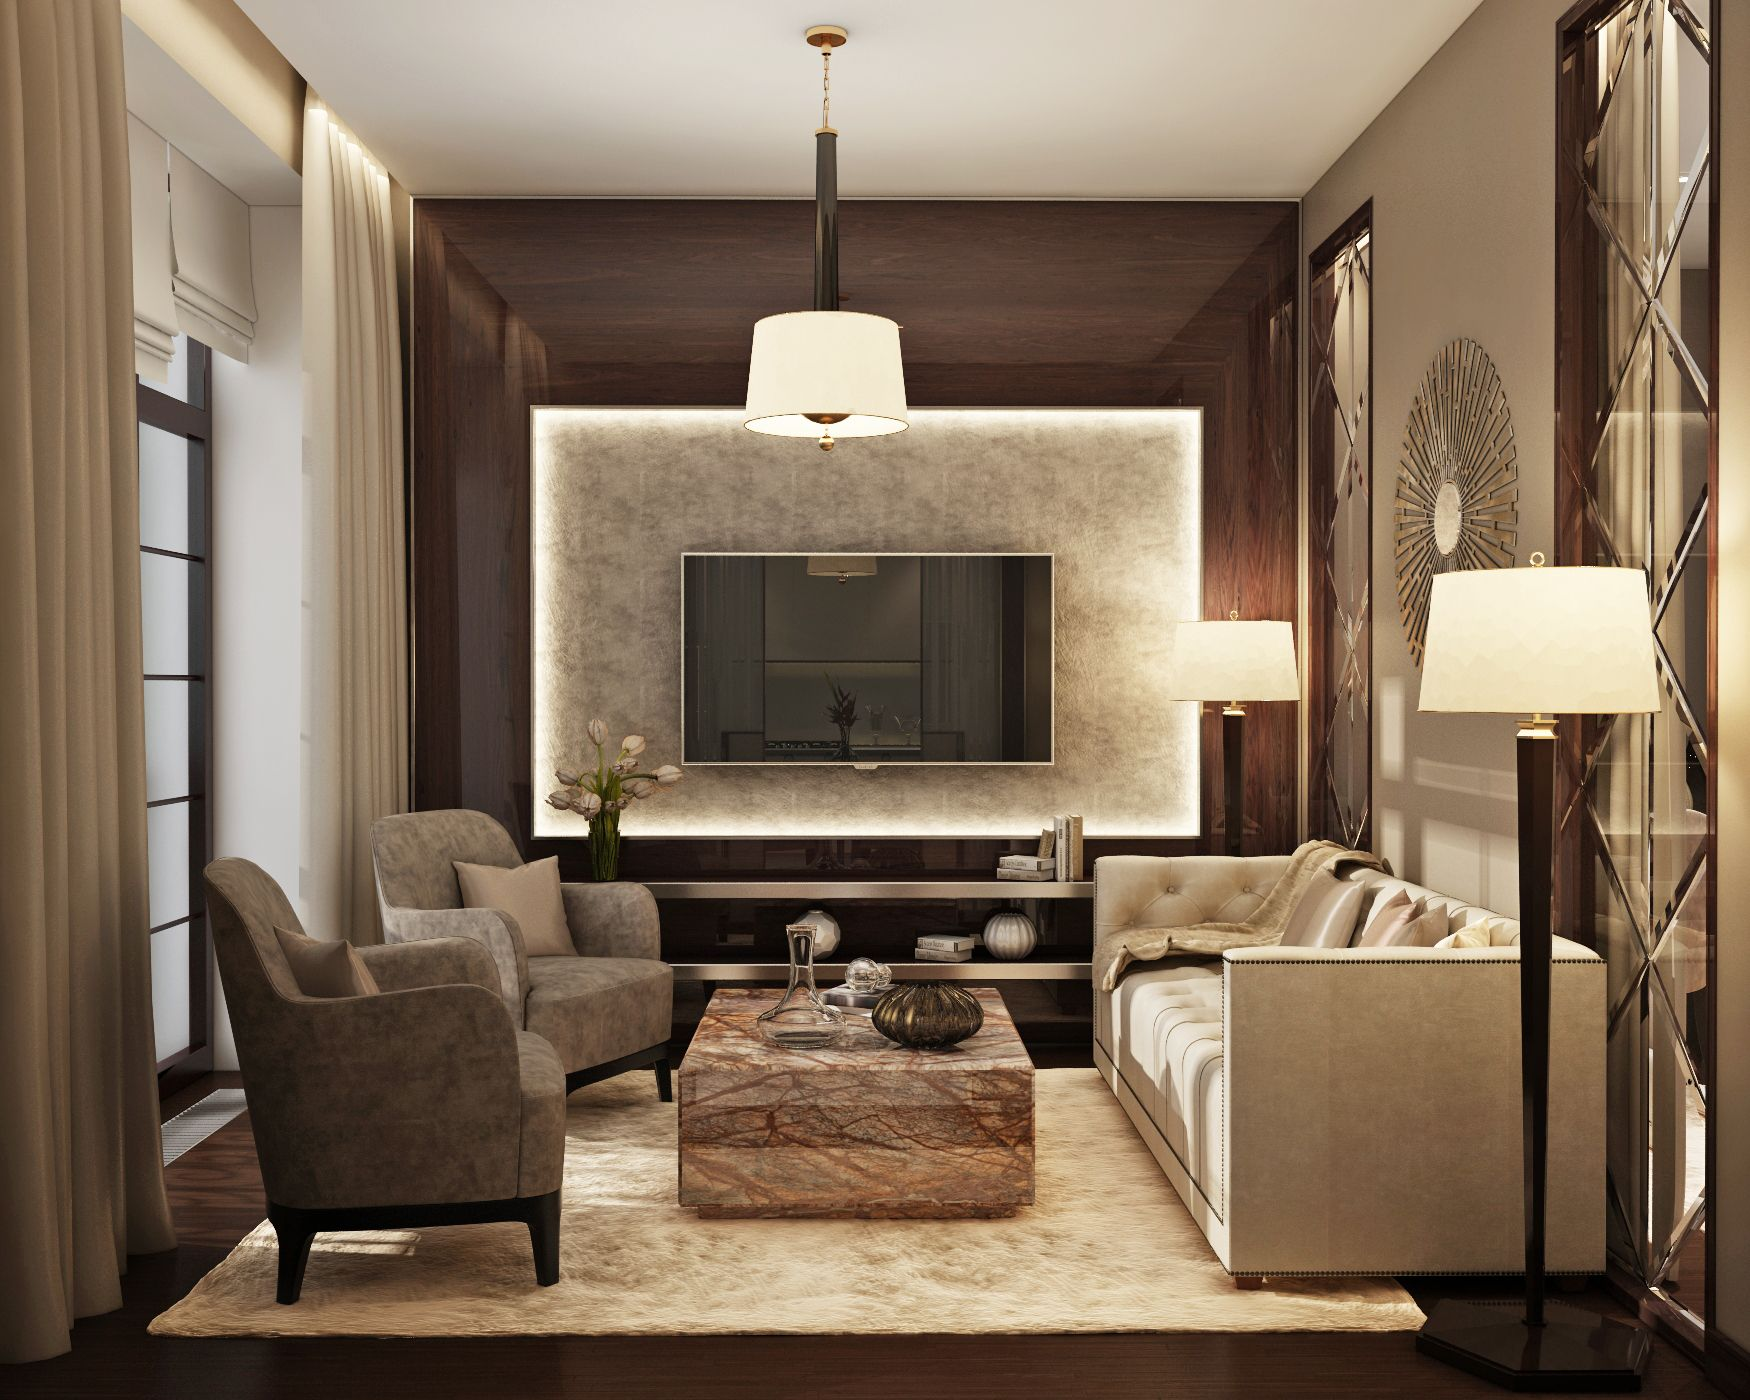 Marchenko pazyuk design small luxury apartment design for Apartment living room inspiration